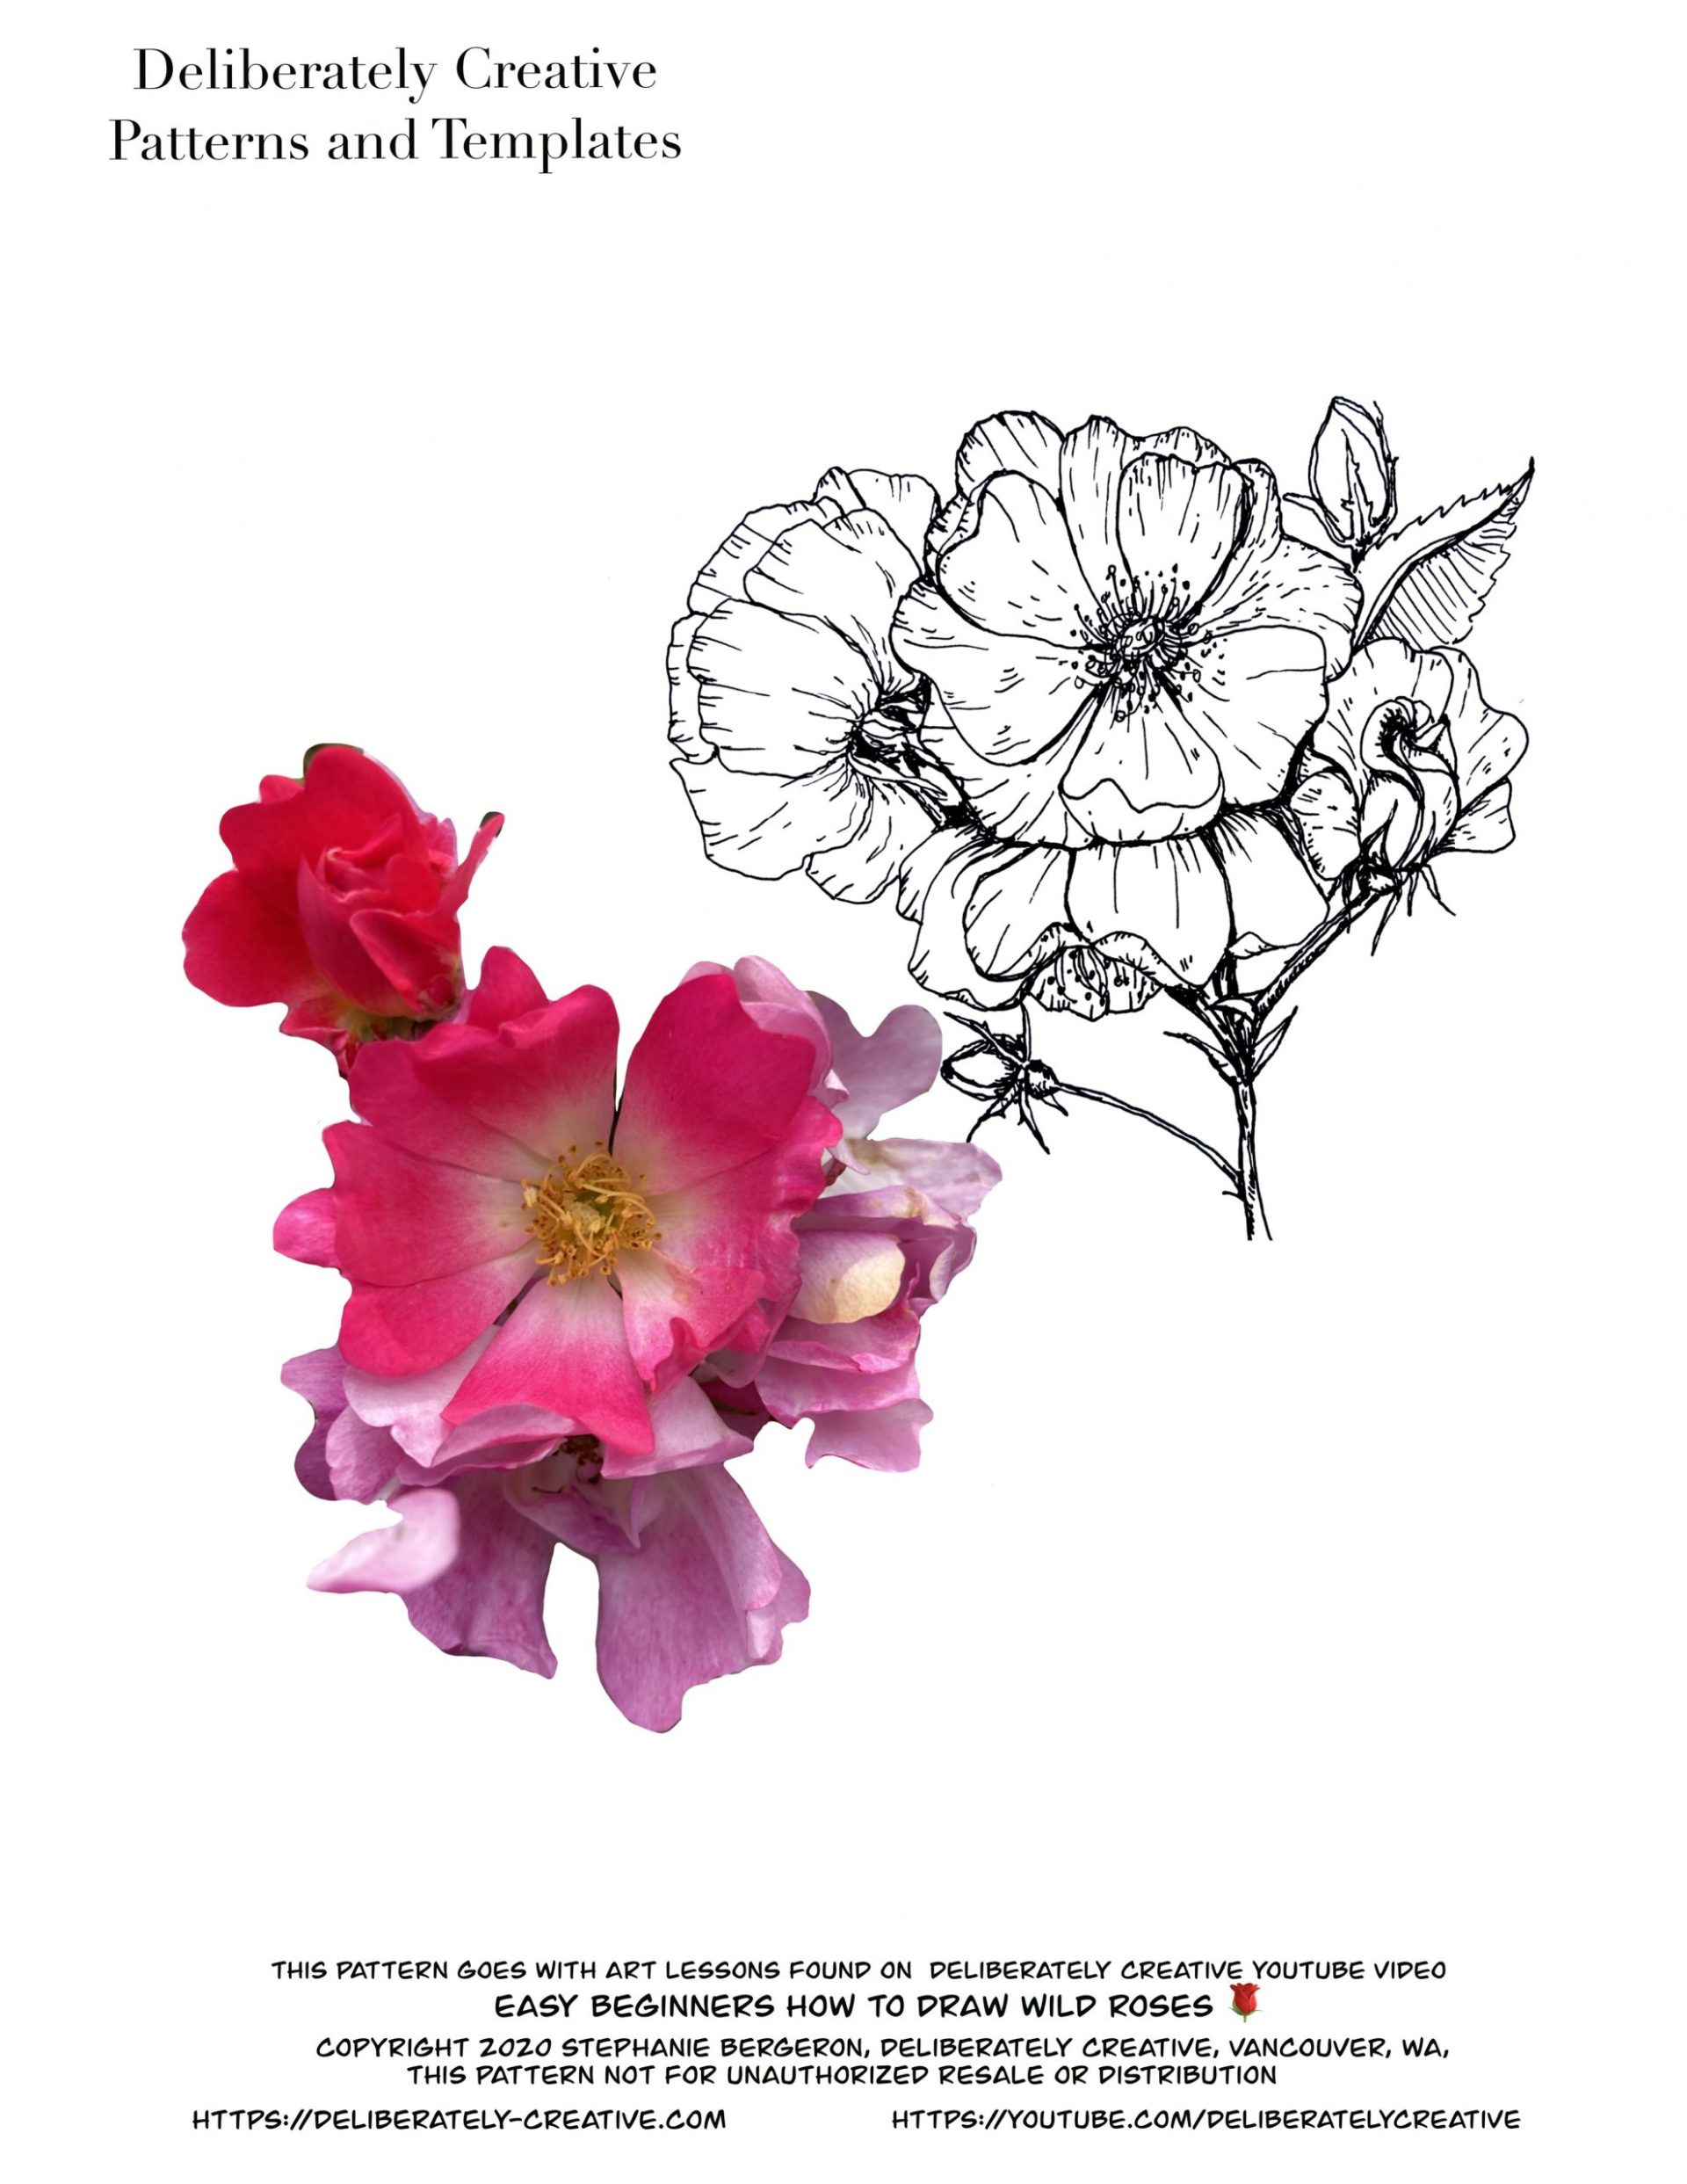 Photo and line art of wild roses